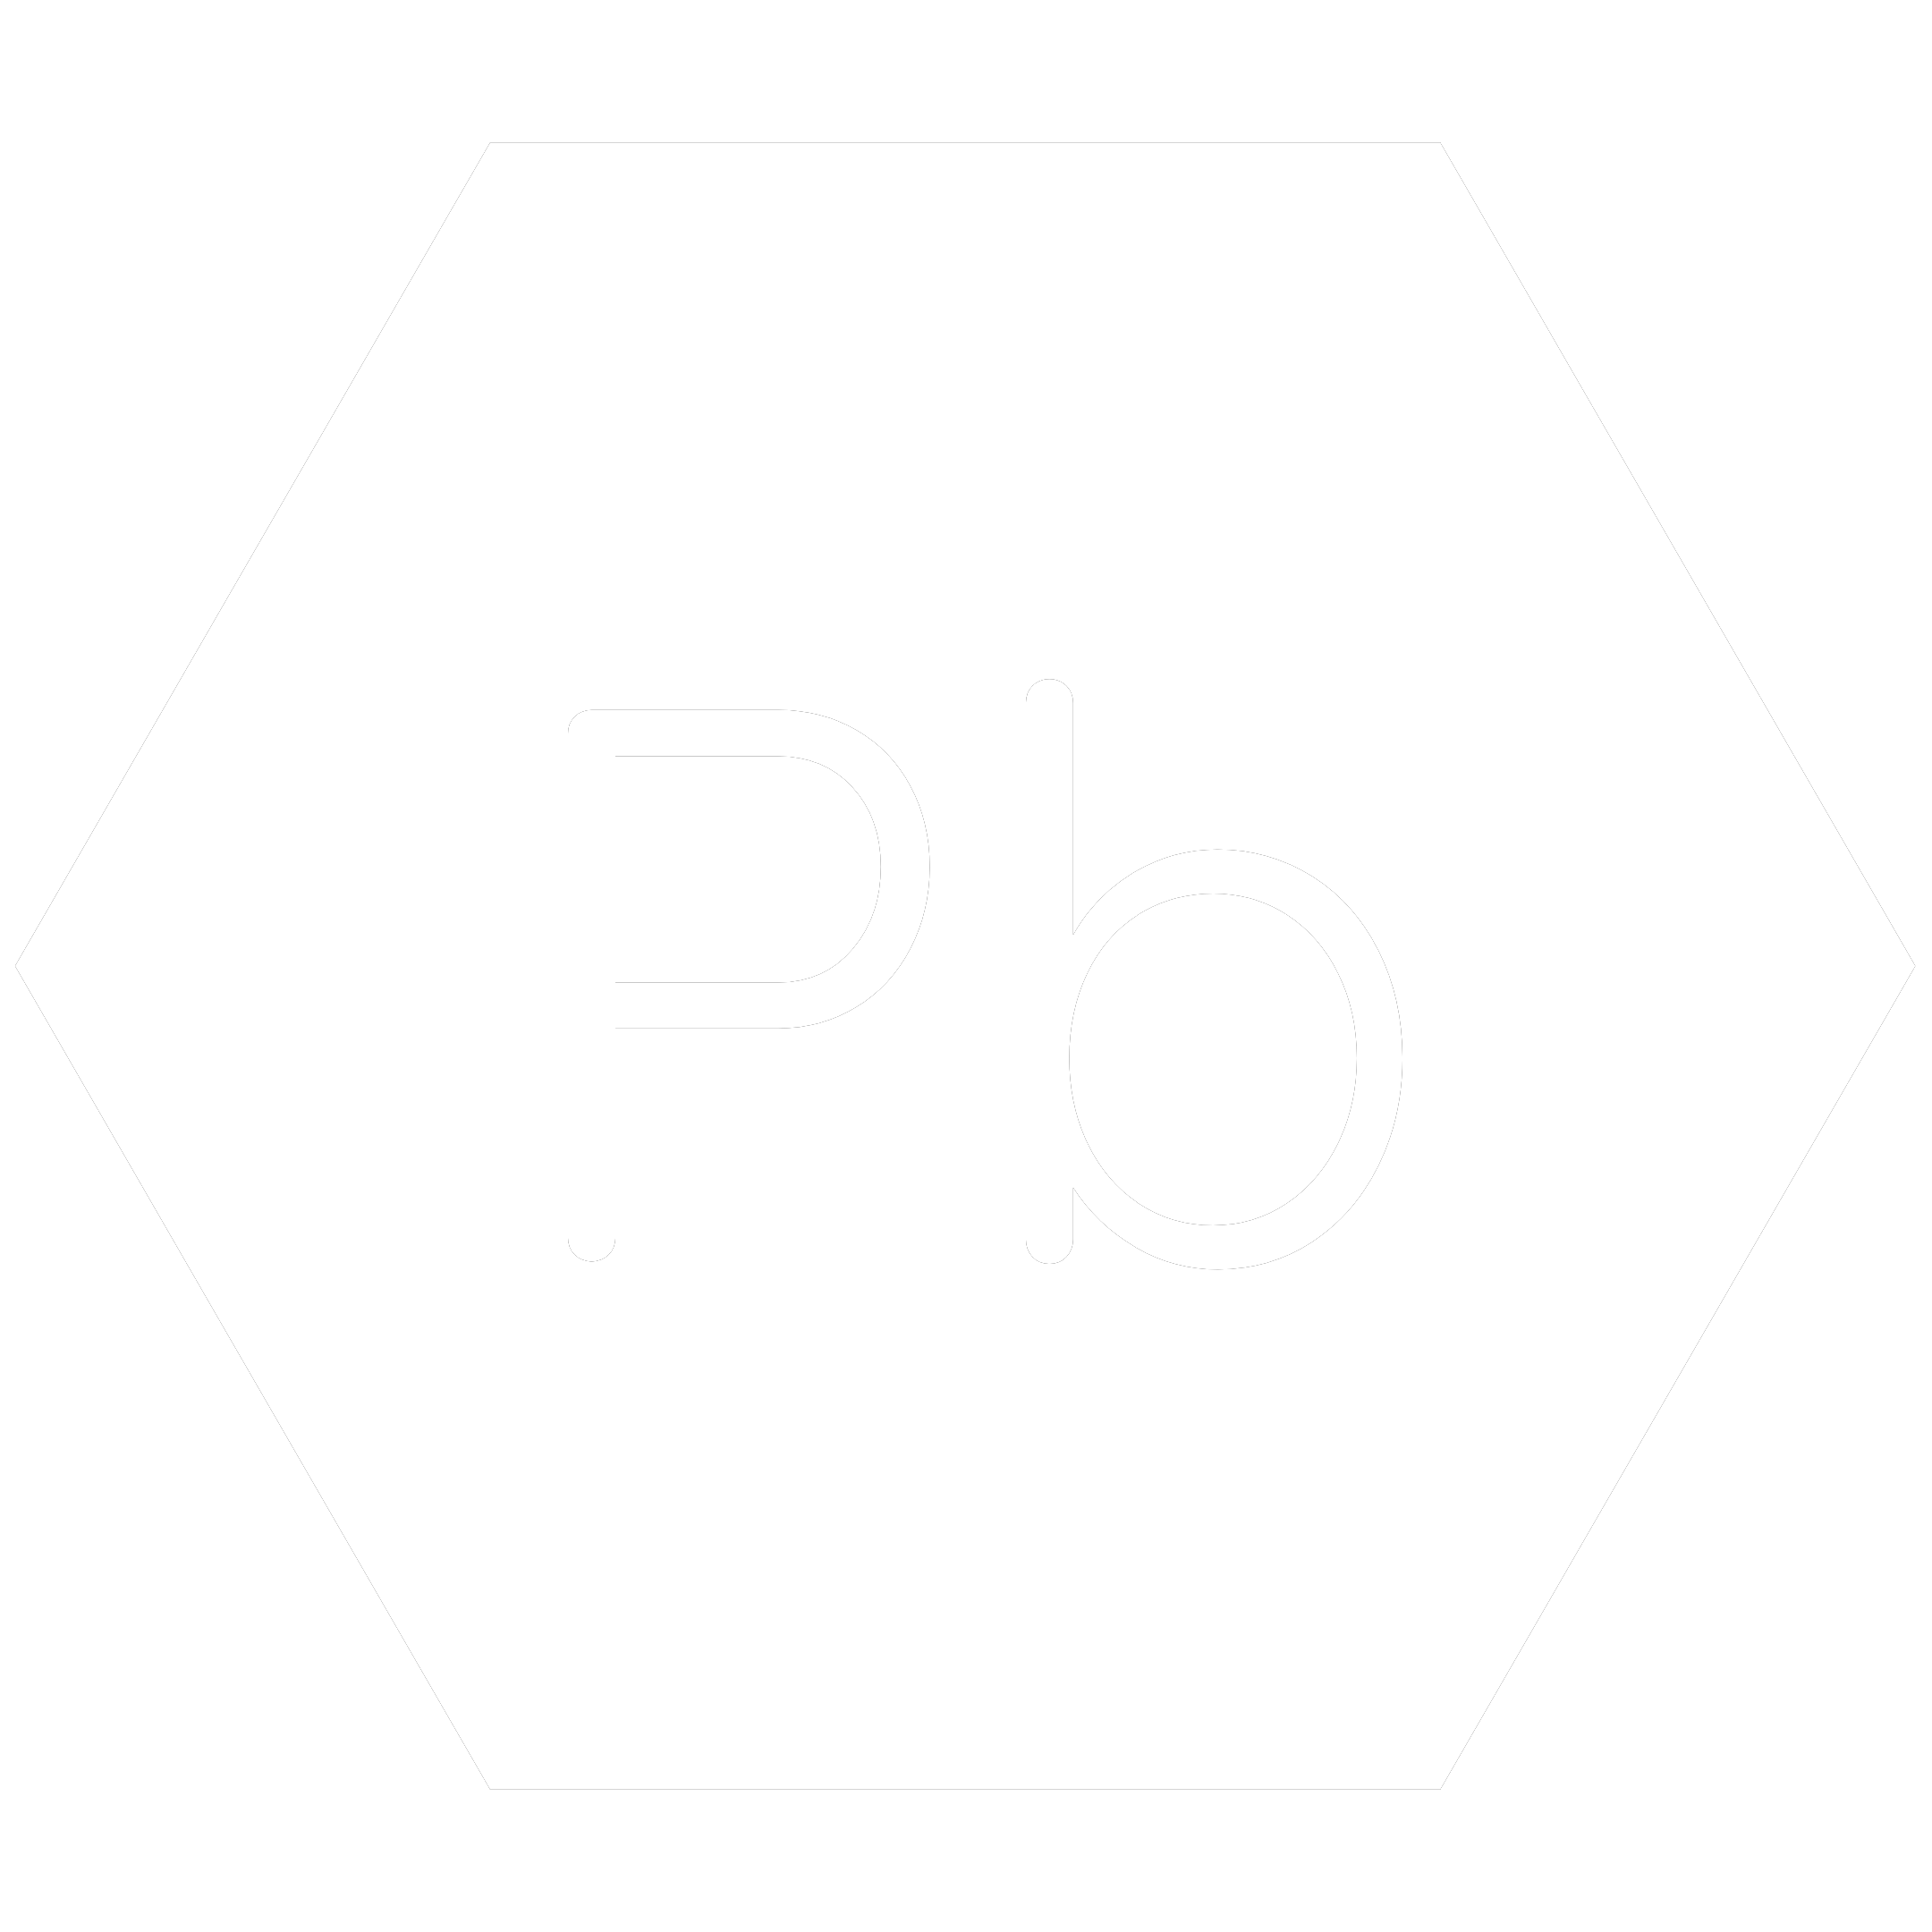 White hexagon icon with the chemical symbol for Lead which is a banned RoHS substance.